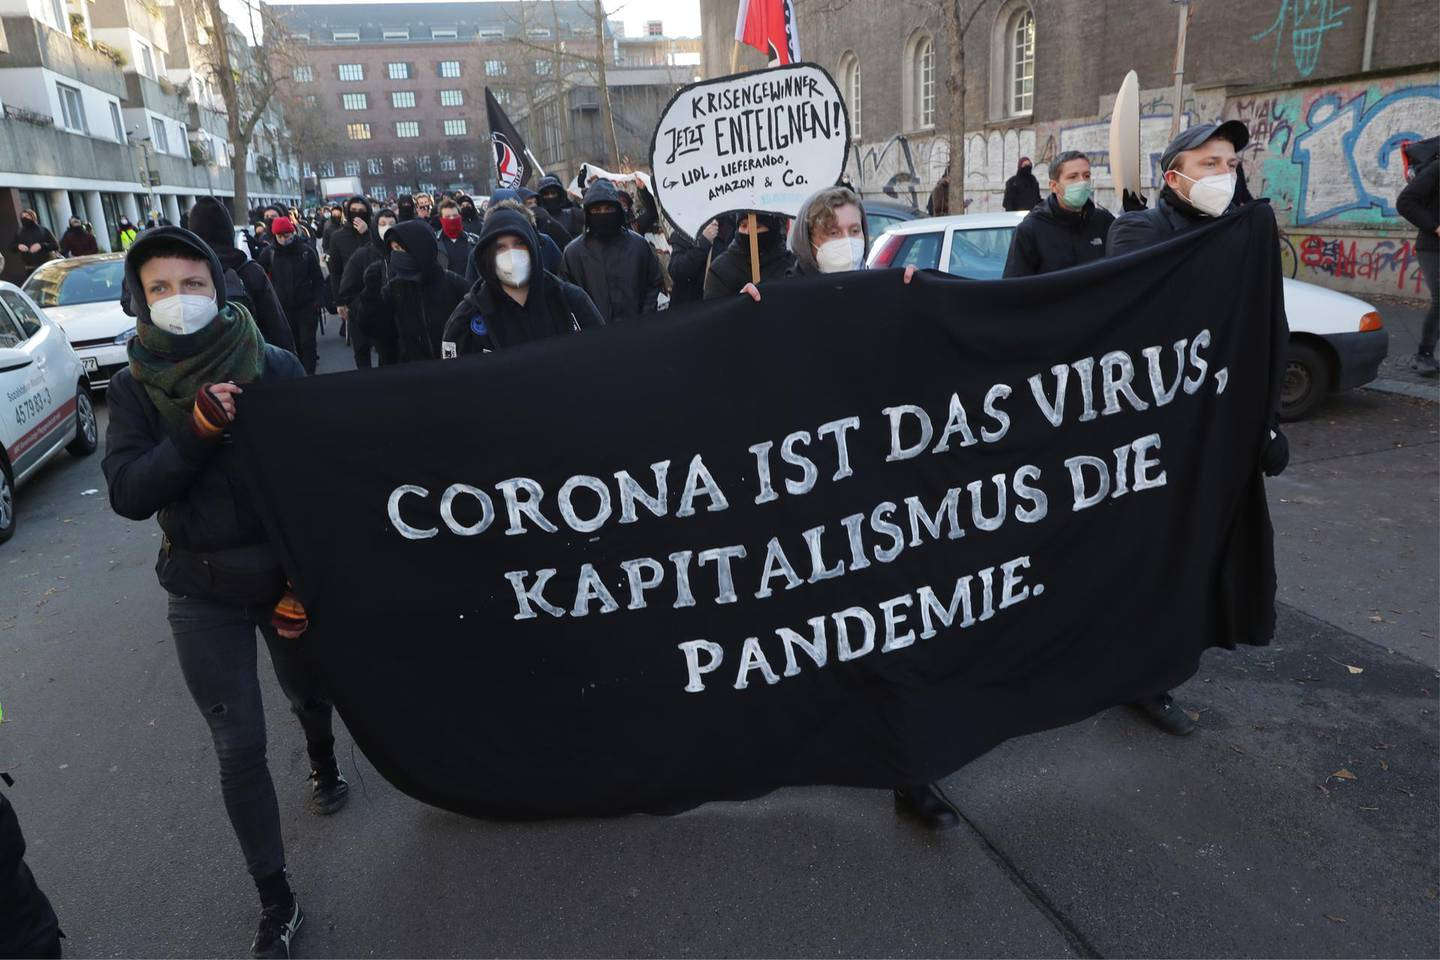 epa08911335 People participate in a demonstration 'FCK2020 - For a better tomorrow' in Berlin, Germany, 30 December 2020. Protesters are against coronavirus conspiracy ideologues and for dignified health, a fair education, labor rights and labor protection. The banner reads 'Corona is the virus, capitalism is the pandemic'.  EPA/HAYOUNG JEON